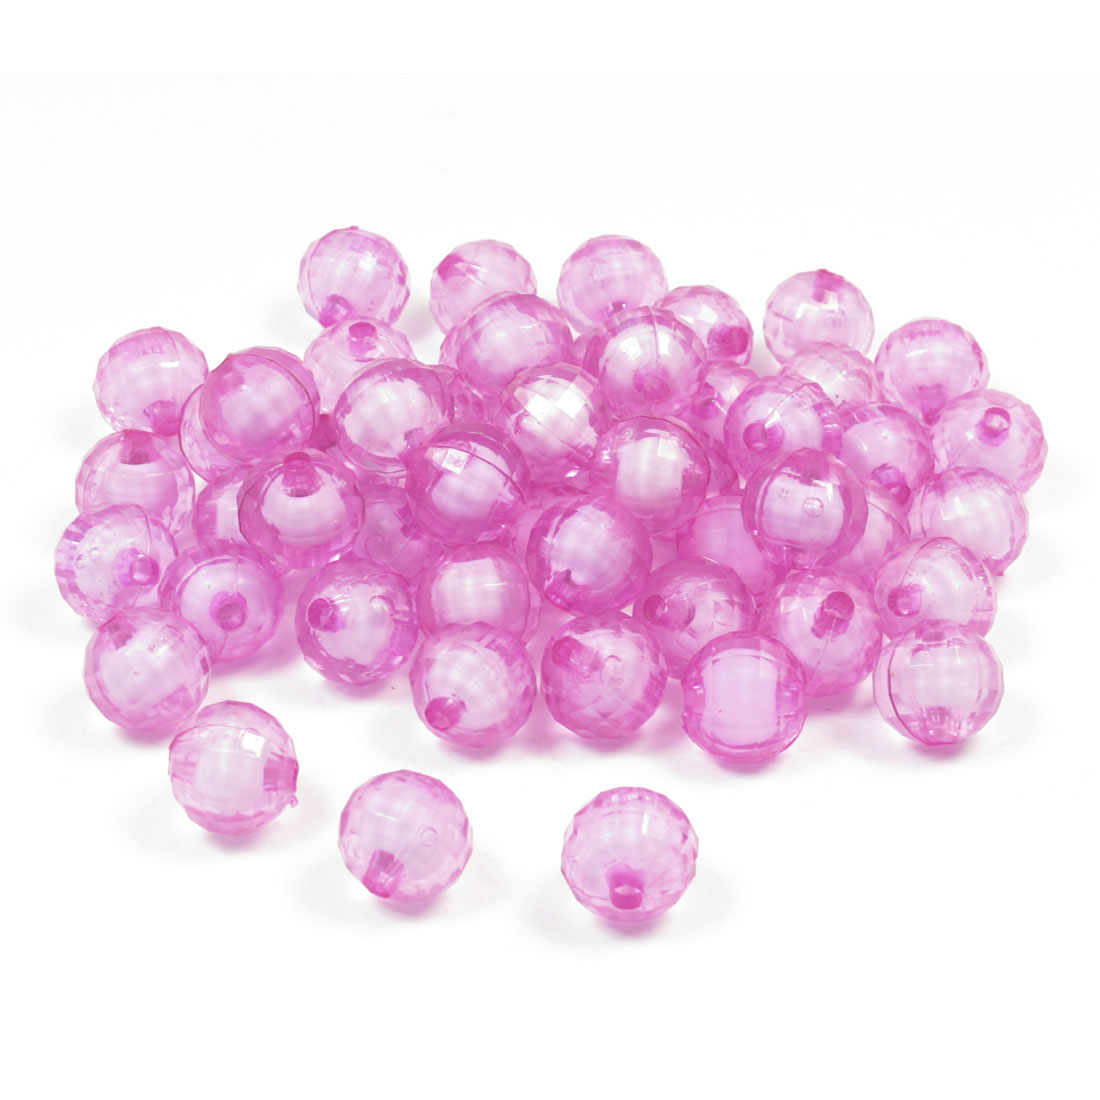 Plastic Faceted Crystal Ball Beads Fuchsia 55 Pcs for Necklace